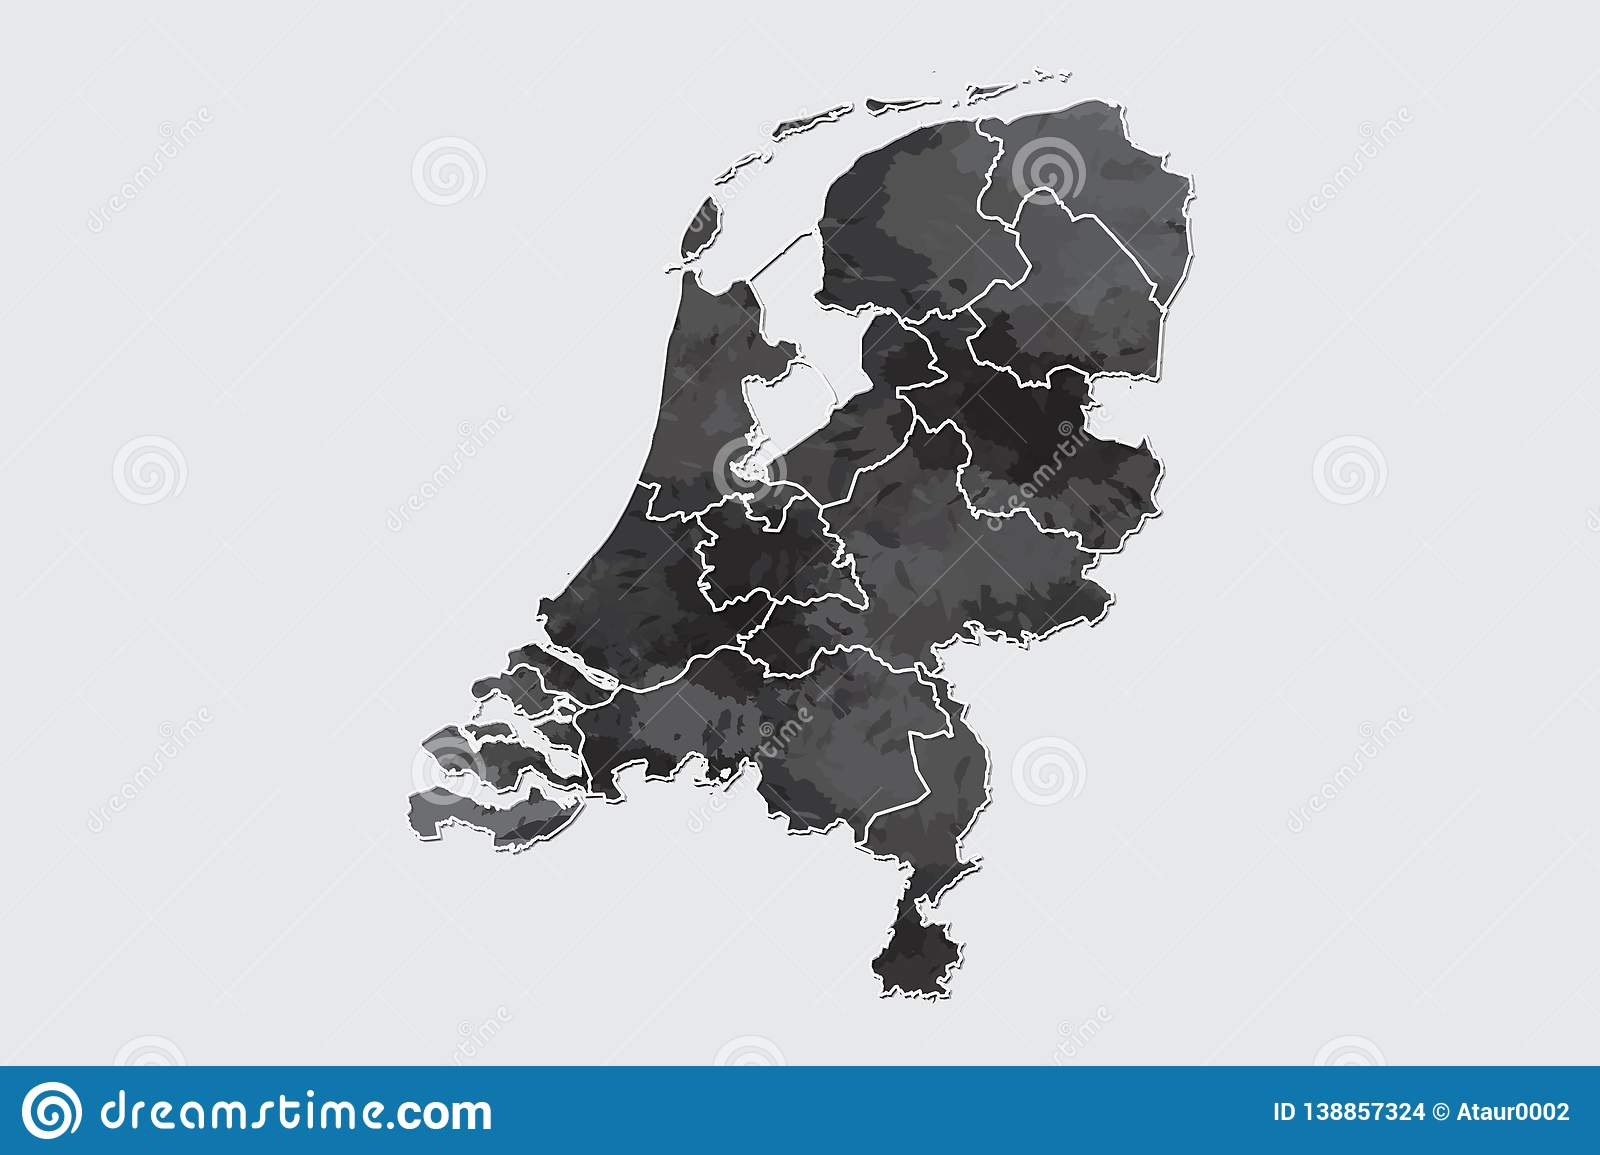 Netherlands watercolor map vector illustration of black color with border lines of different regions or provinces on light